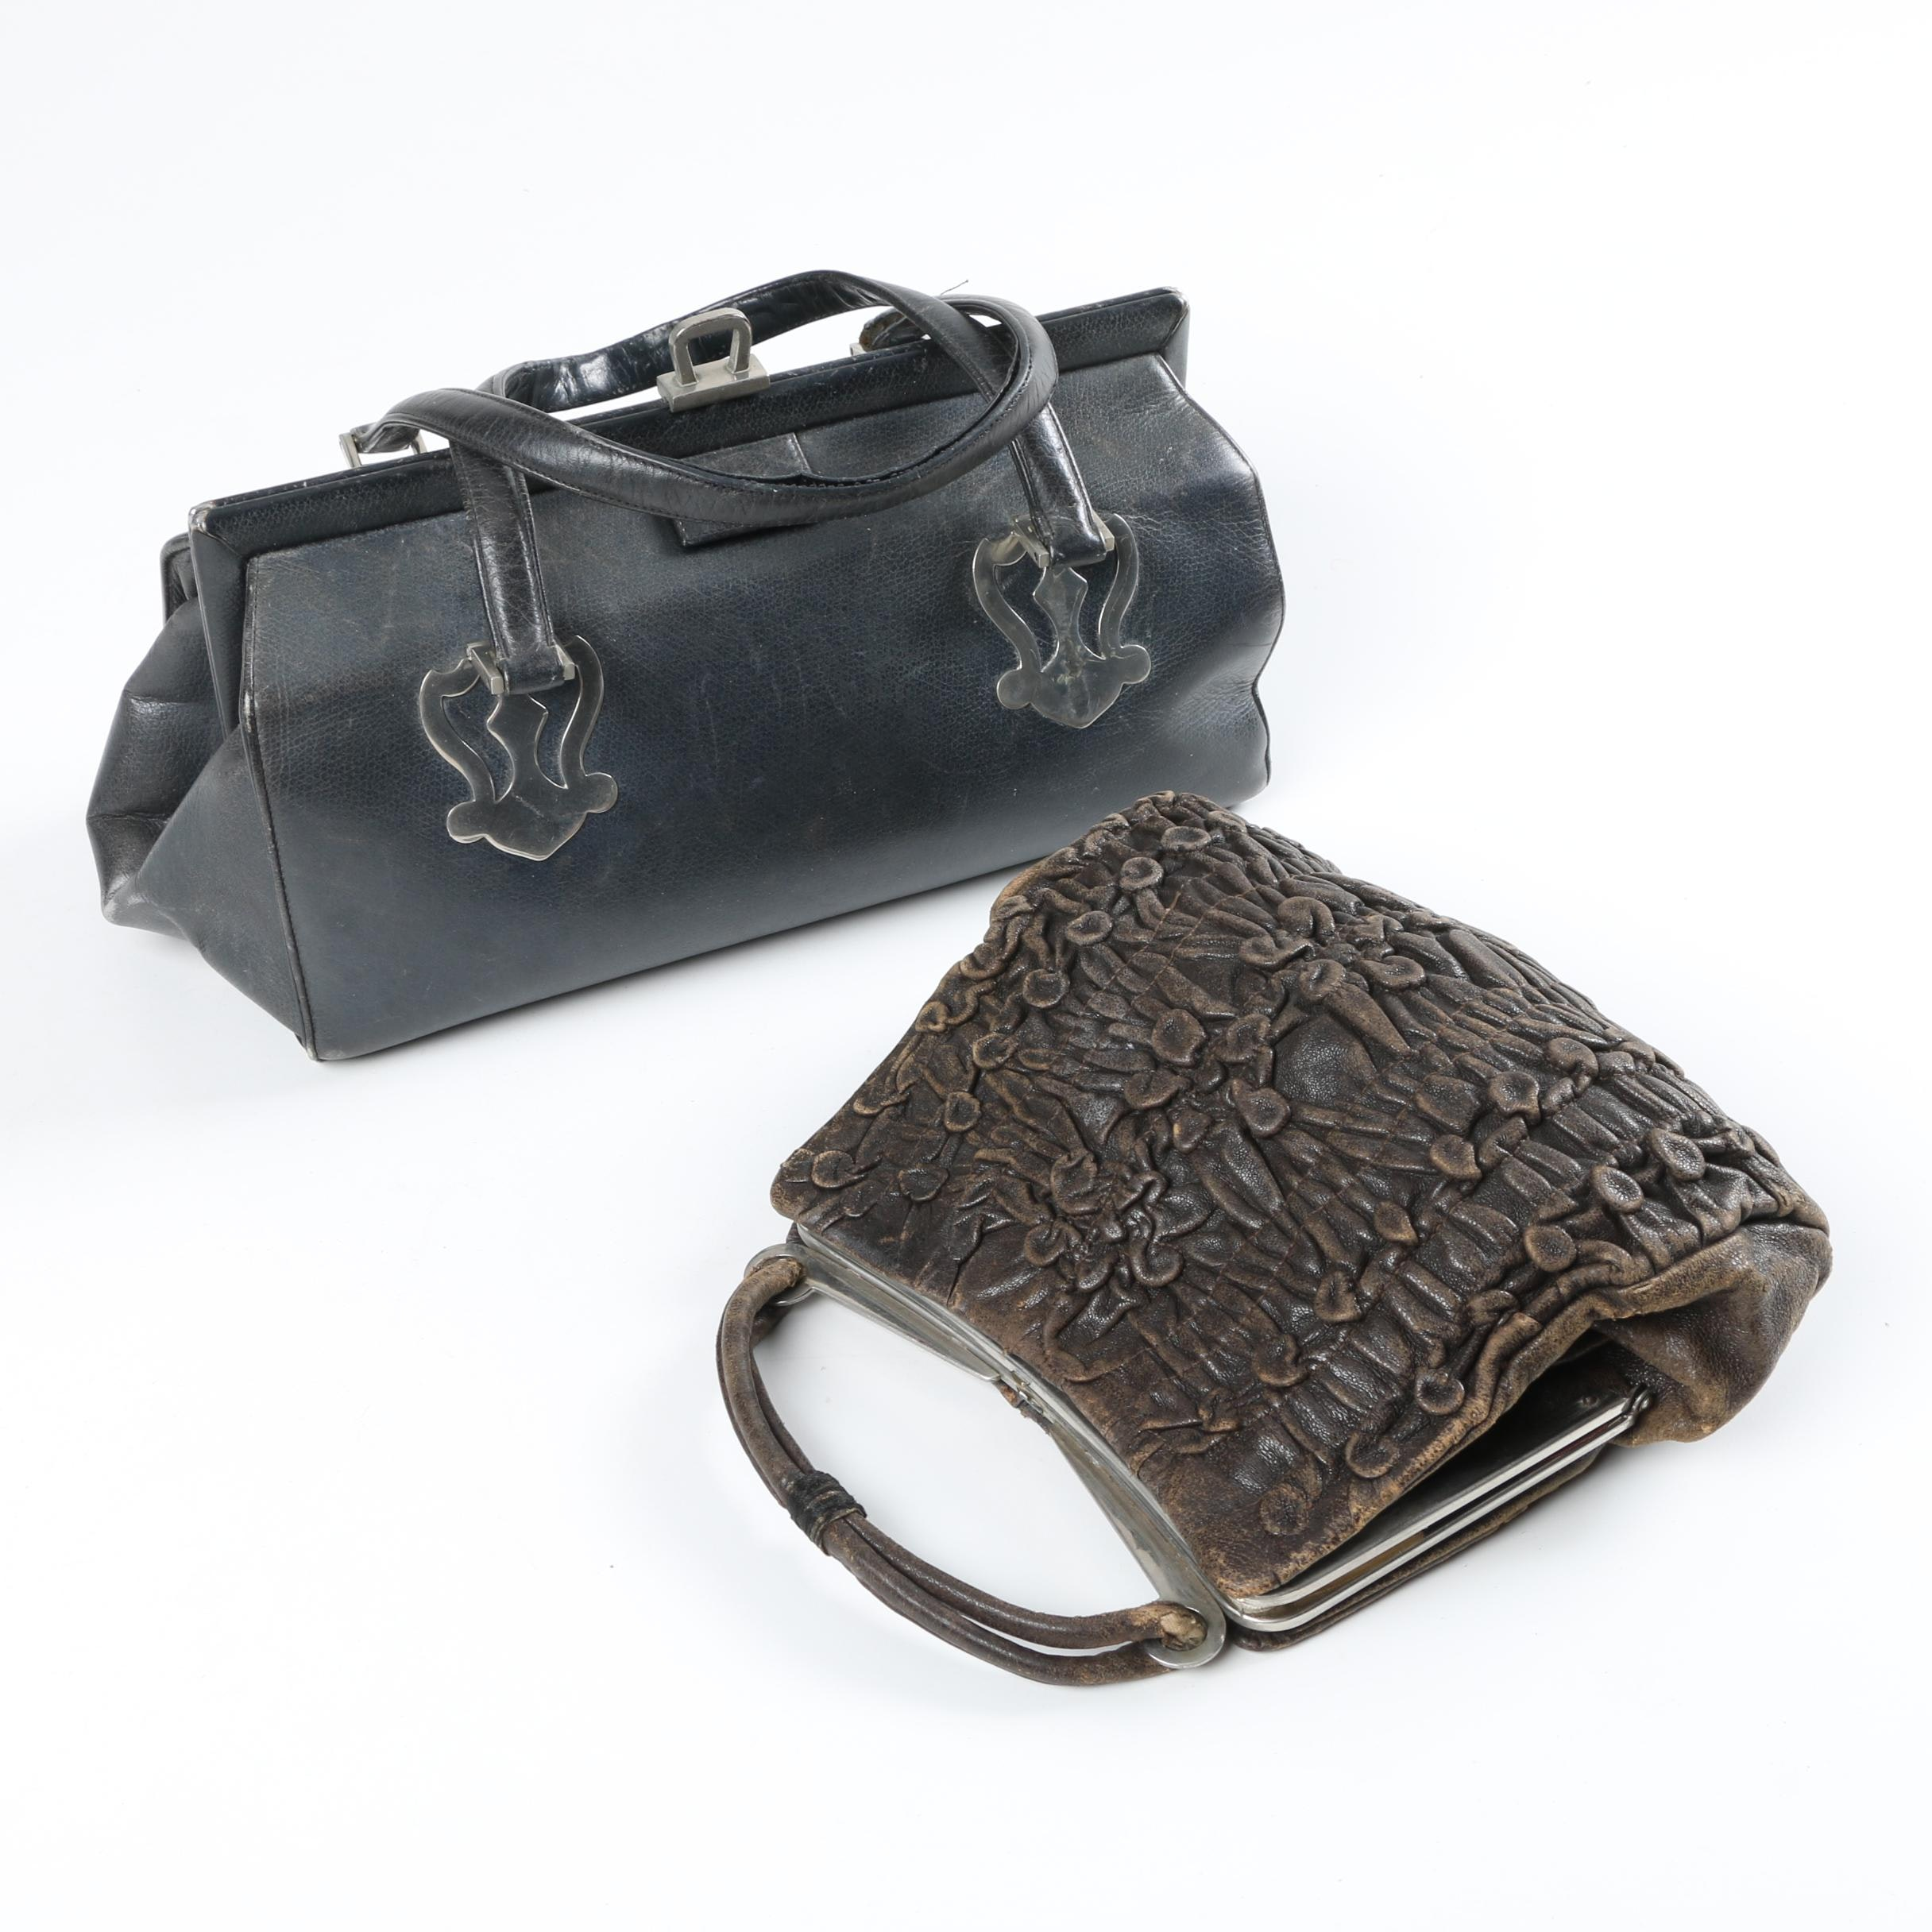 1930s Leather Handbags